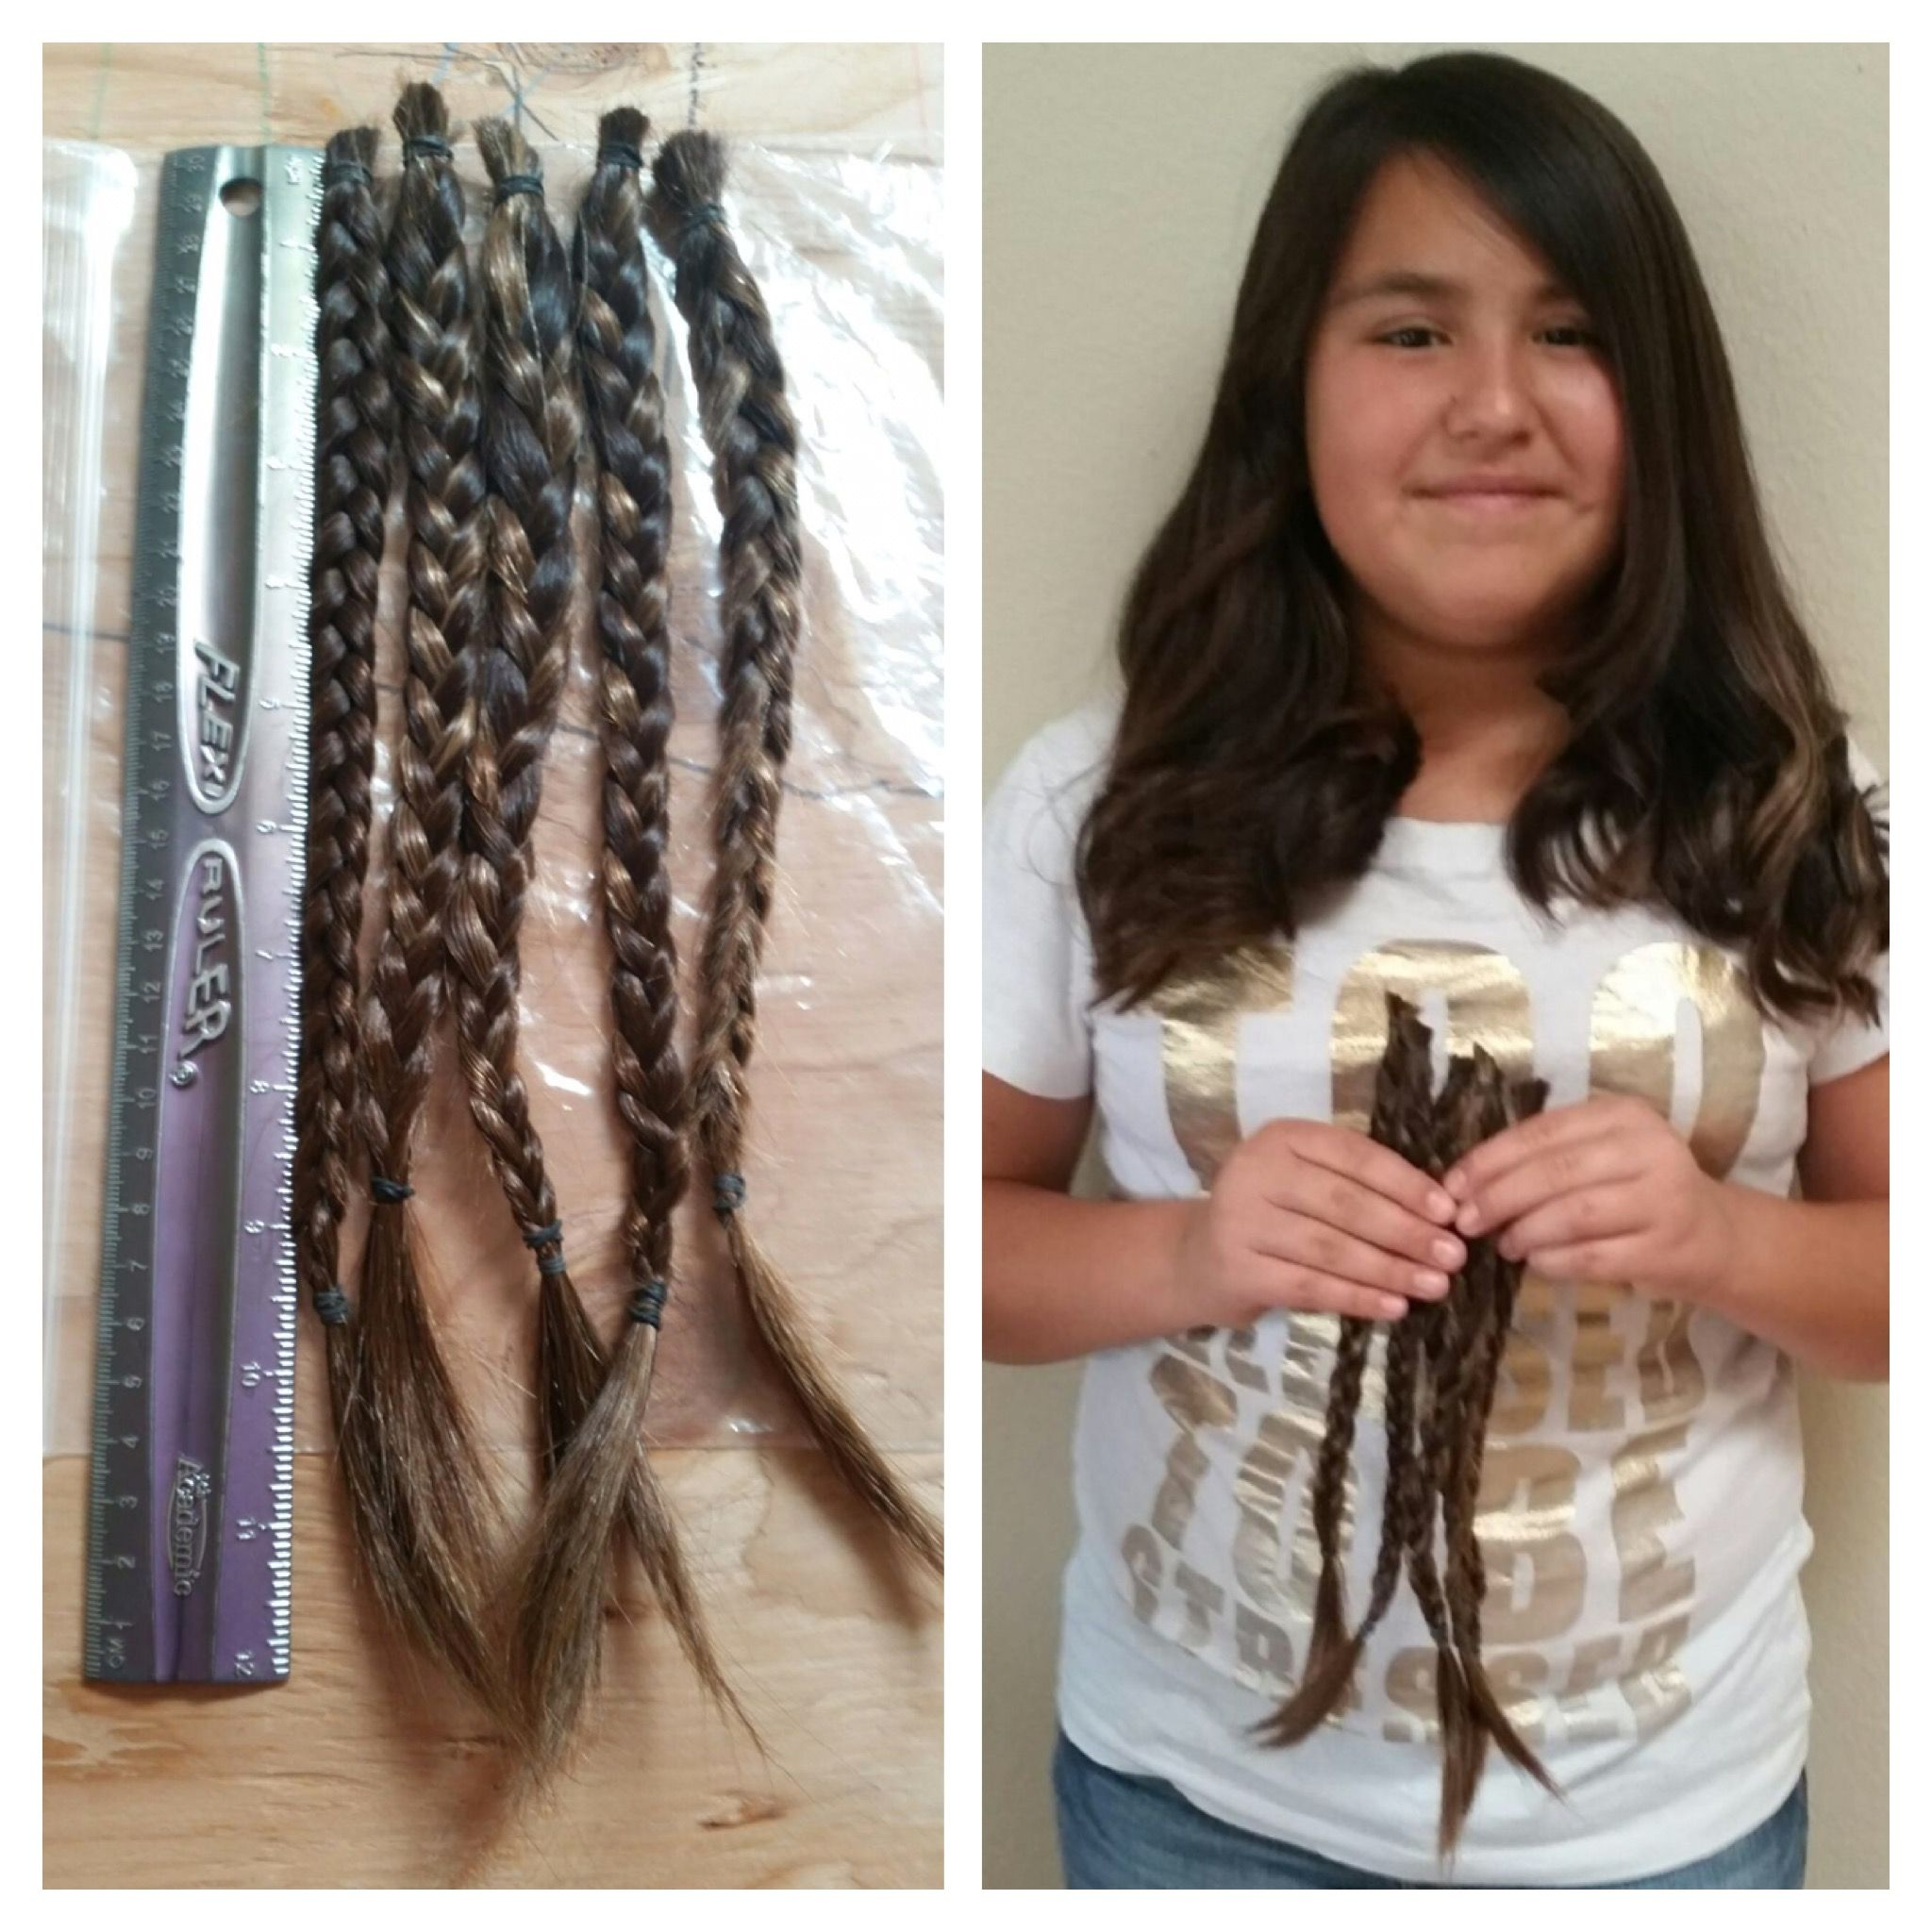 children with hair loss donation Donations to Children With Hair Loss | Hair Donation | Pinterest ...